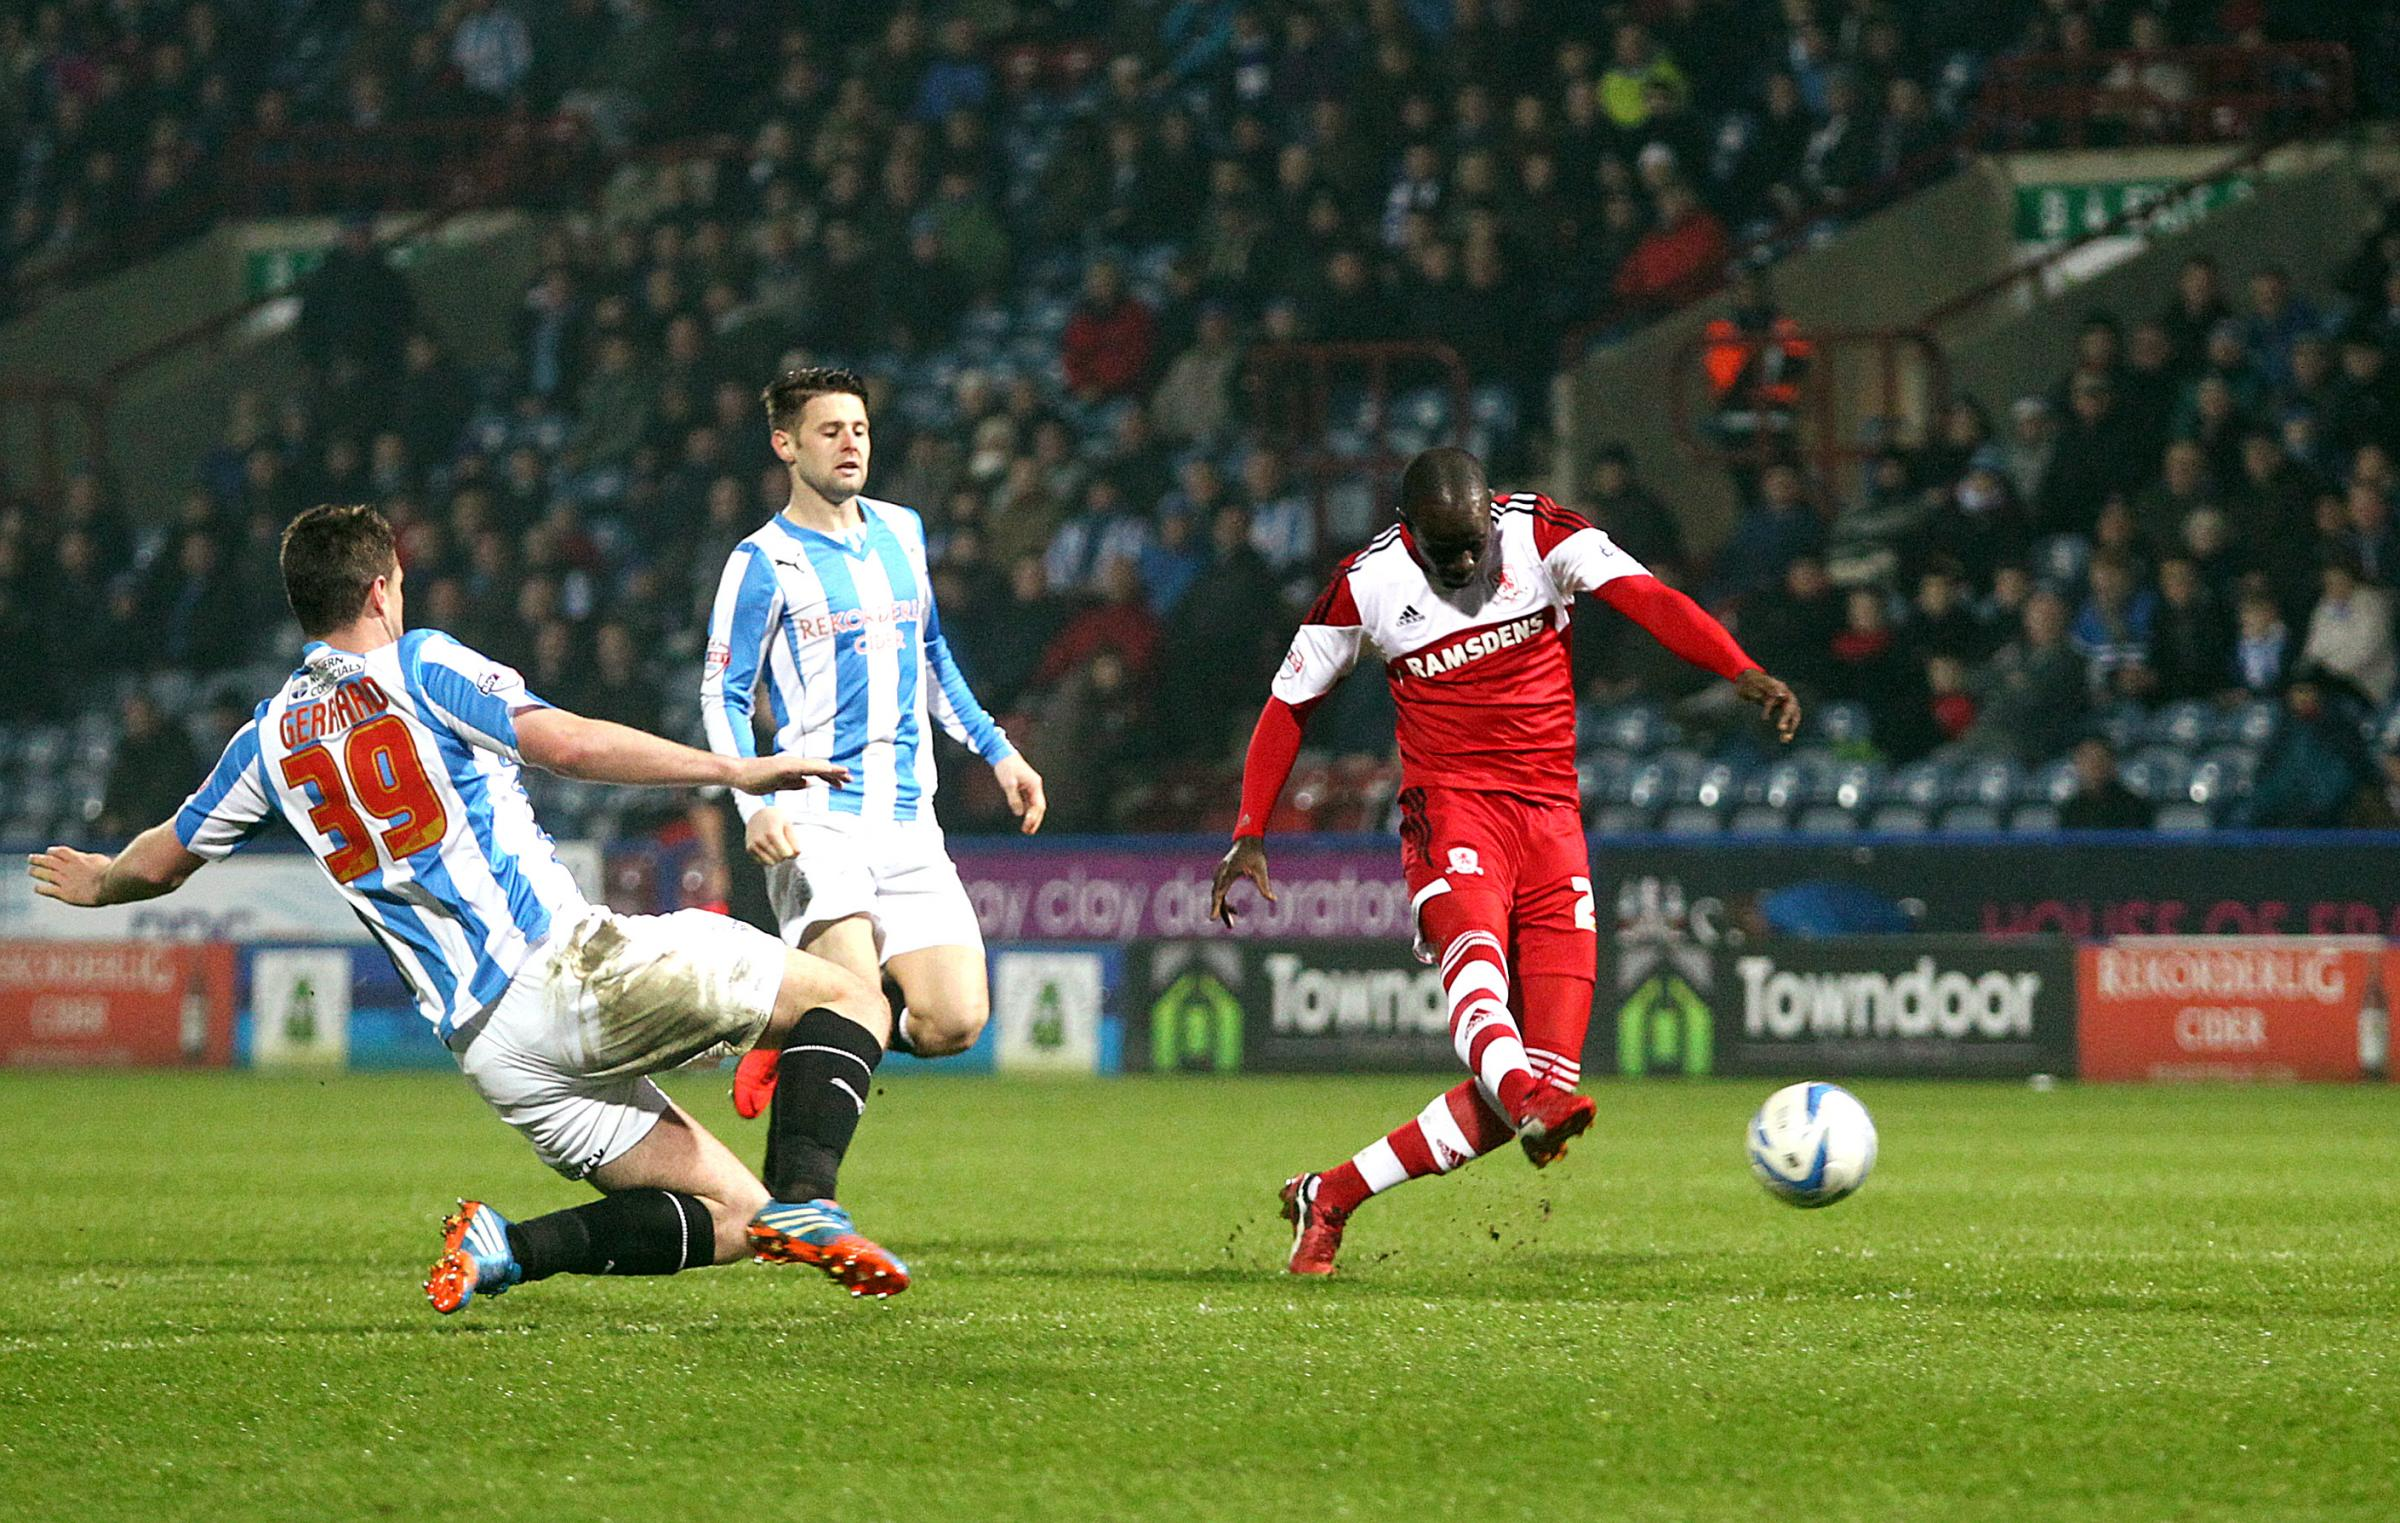 LEVEL AGAIN: Albert Adomah scores his second goal of the evening to equalise at the John Smith's Stadium last night while his teammates join him for the celebrations